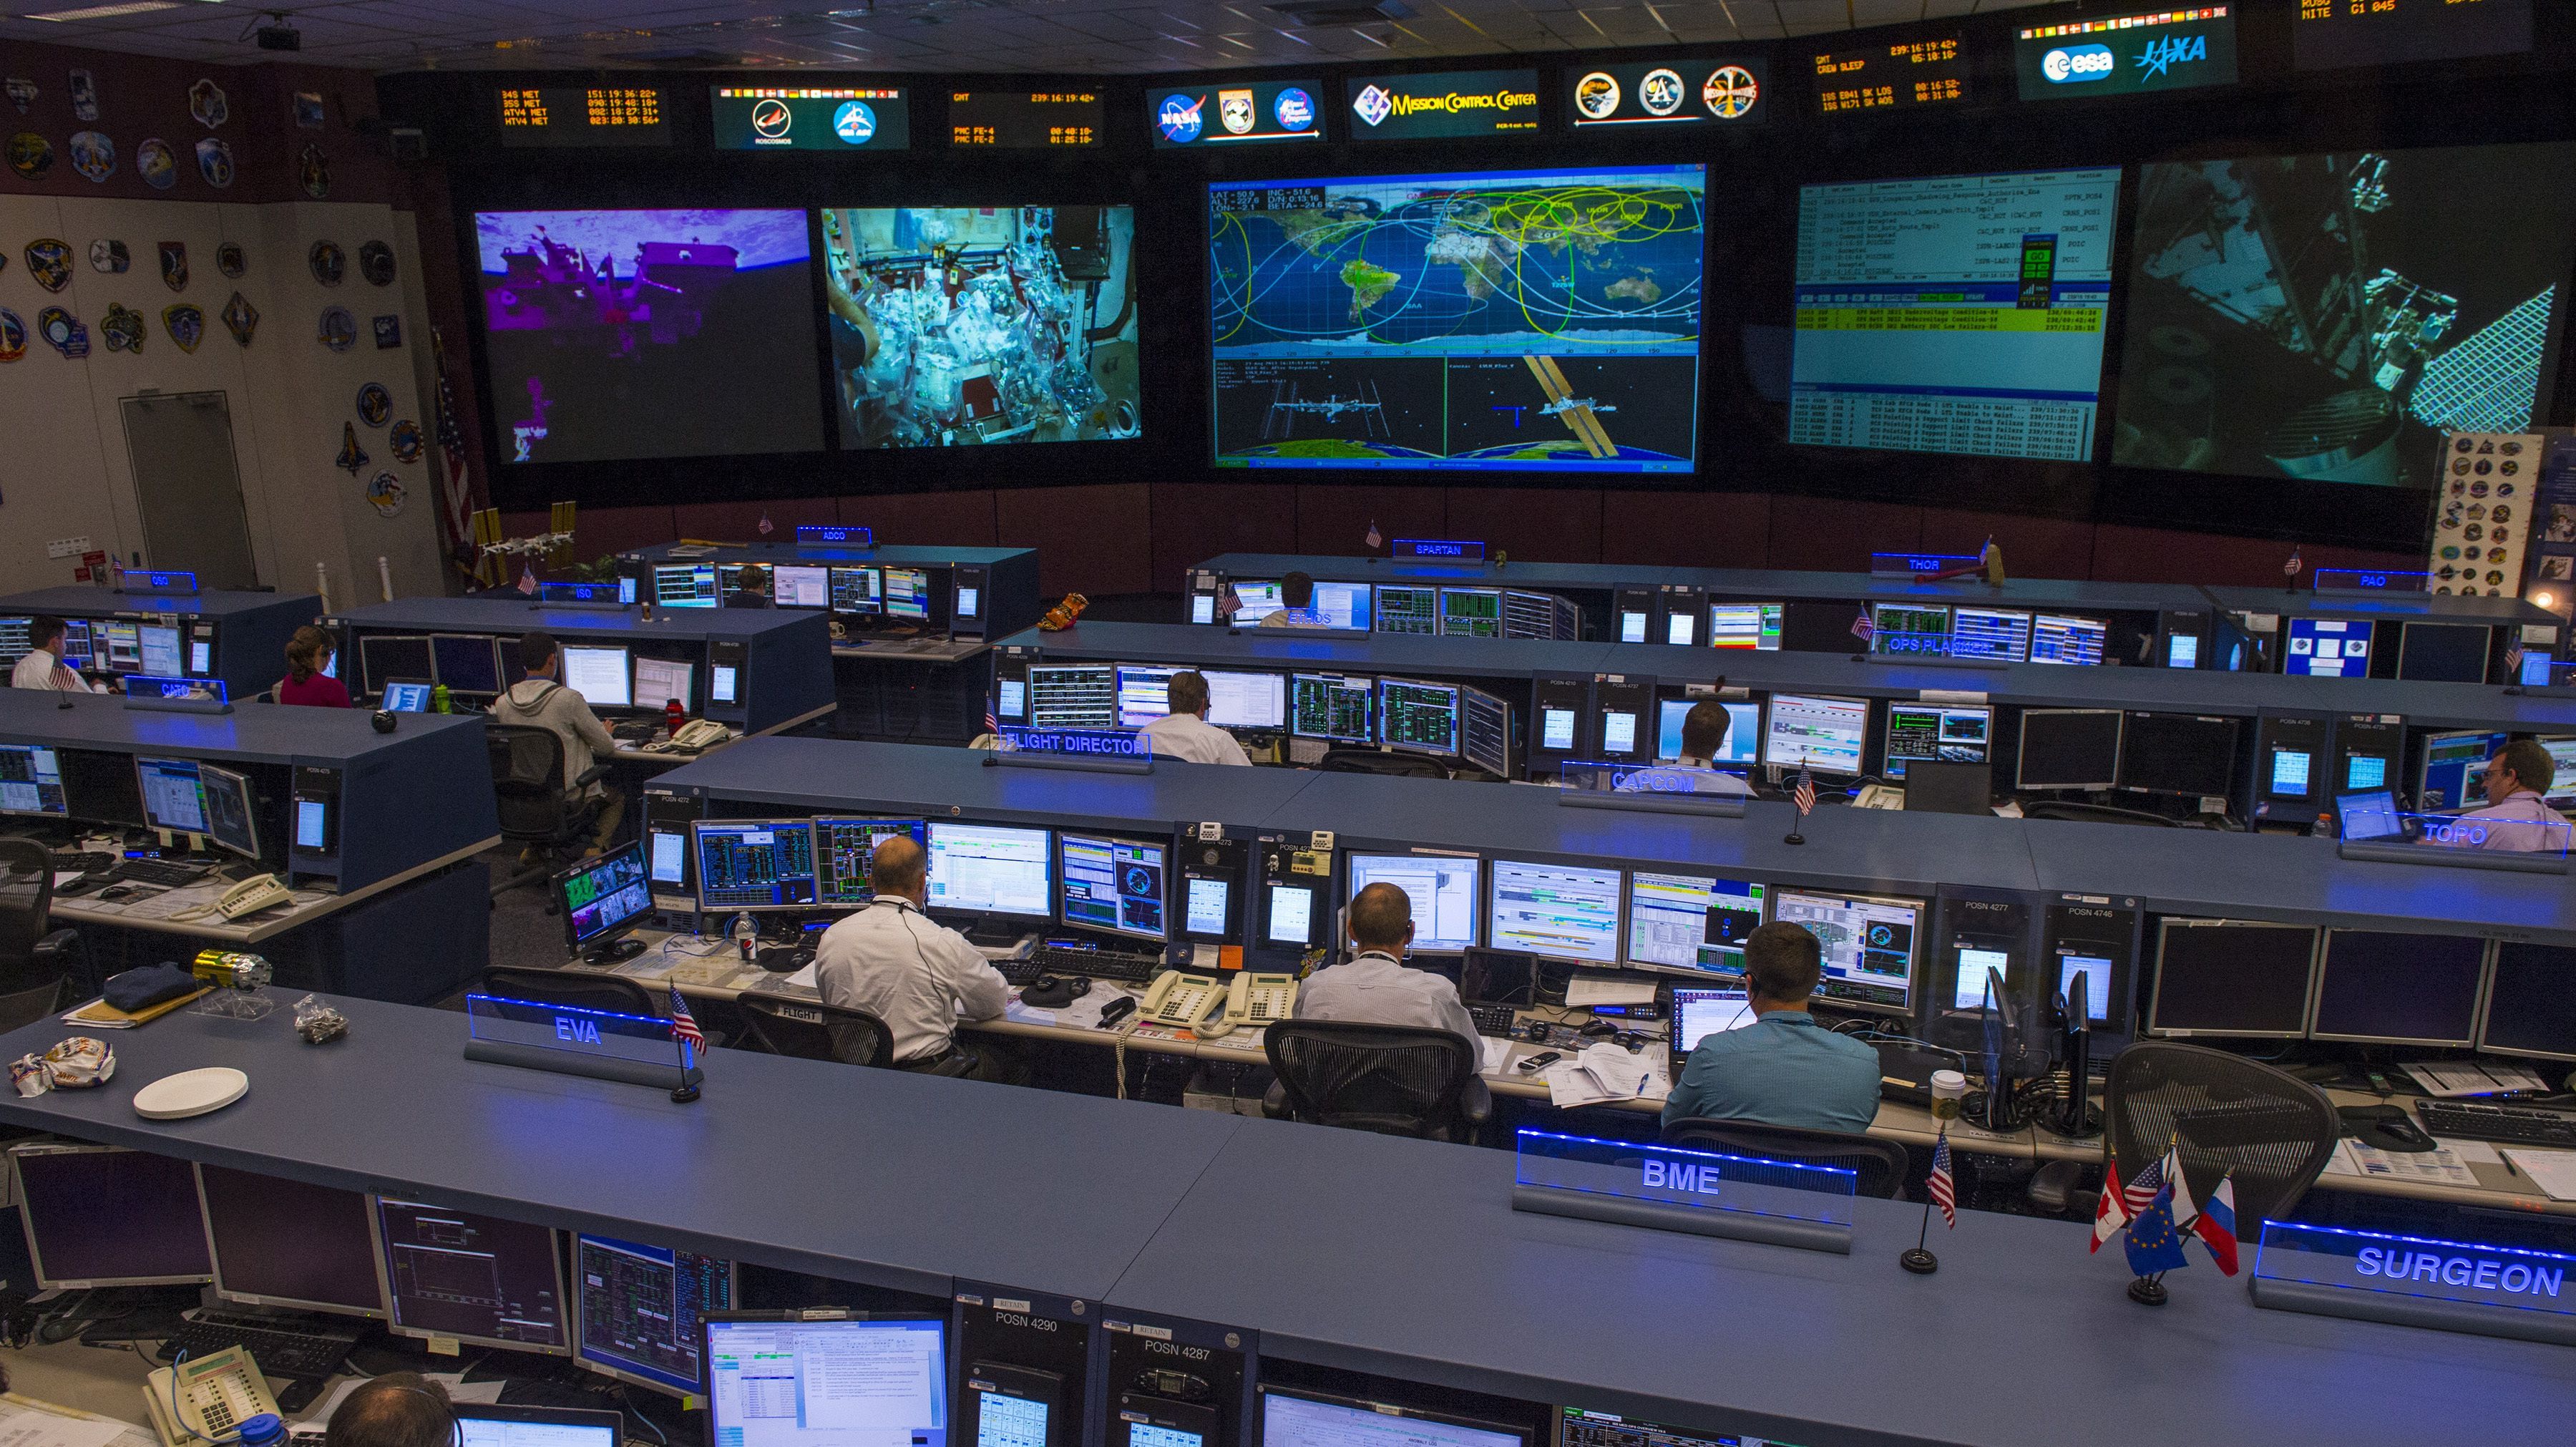 houston control rool nasa - Google Search | Cisco Live images ...